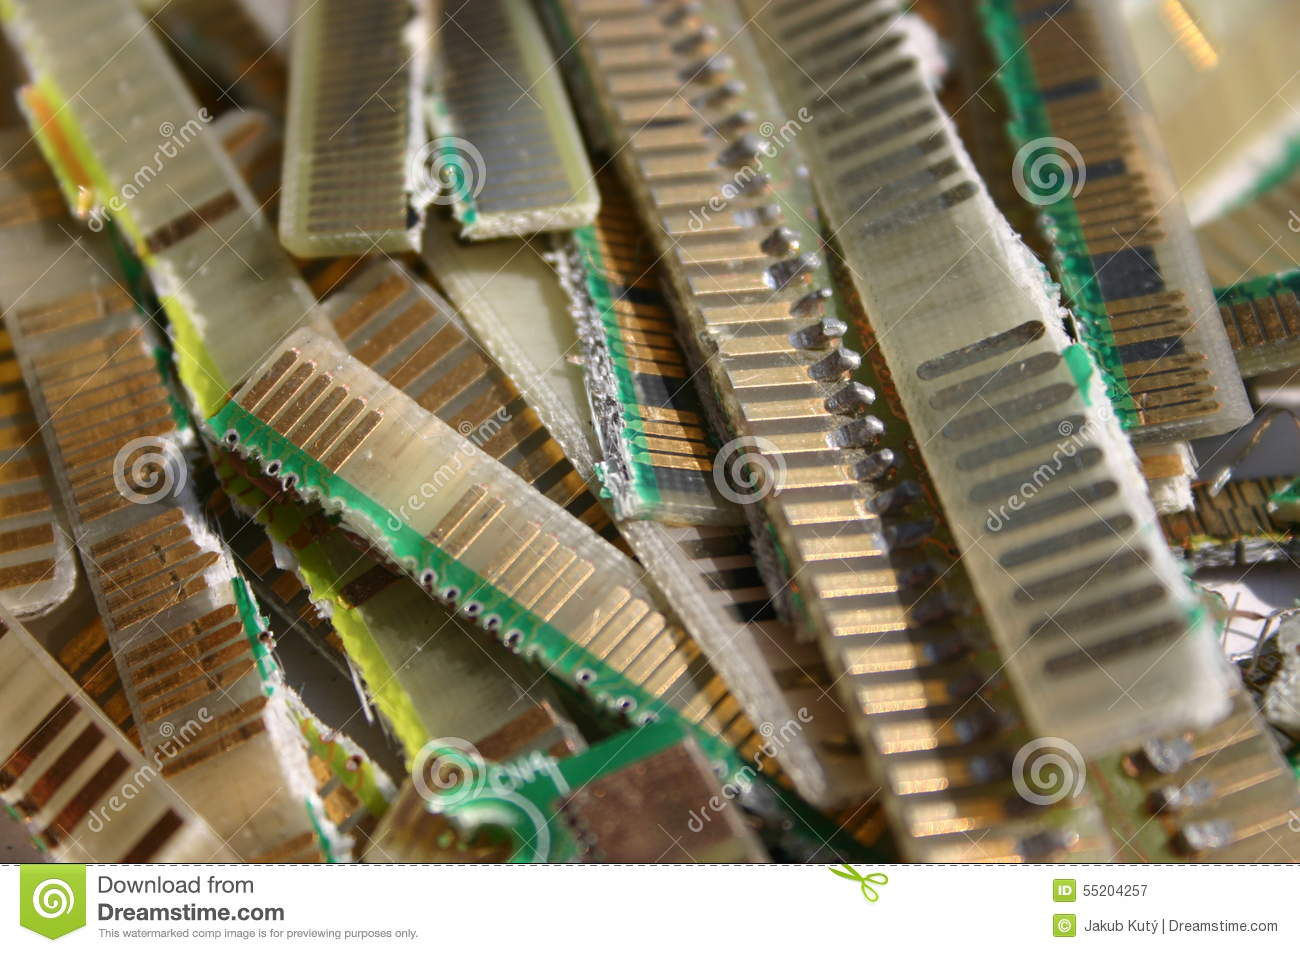 Cutted Contacts From Printed Circuit Boards Stock Image Of Electronics Scrap Recycling Pictures E Waste Gold